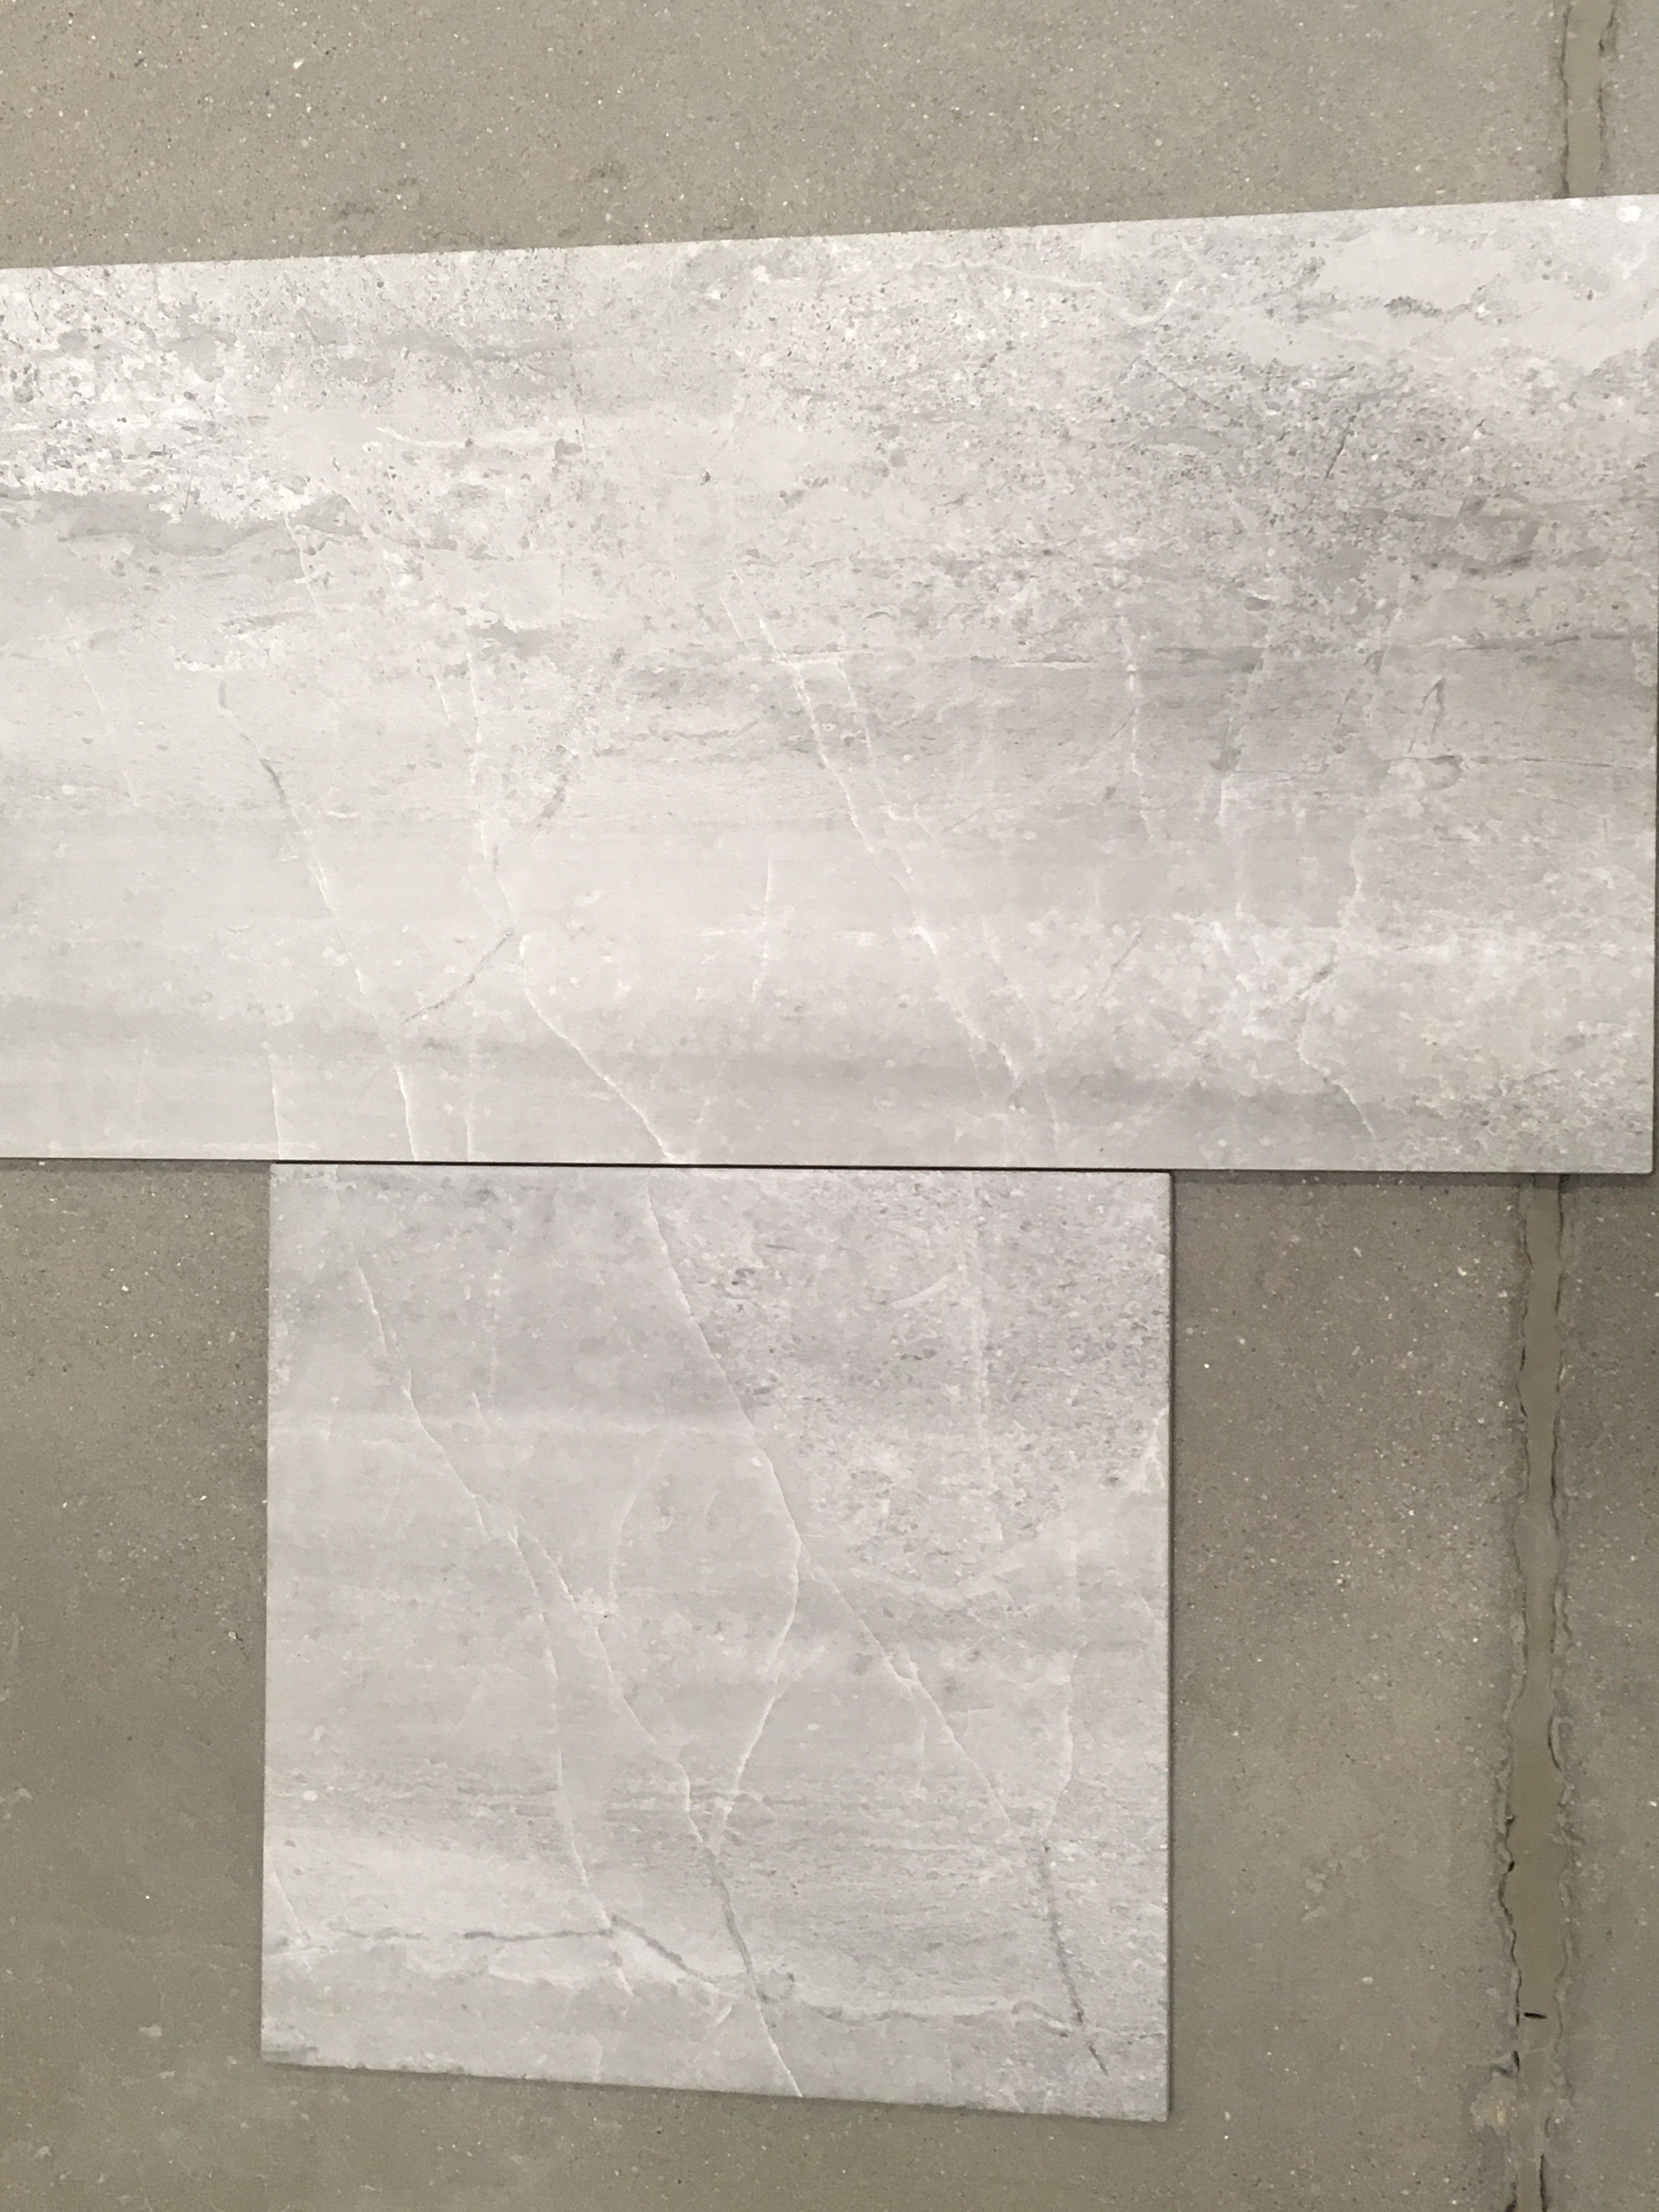 Skyros Grey Porcelain Tile From Lowes Suppose Square Tile Laid On